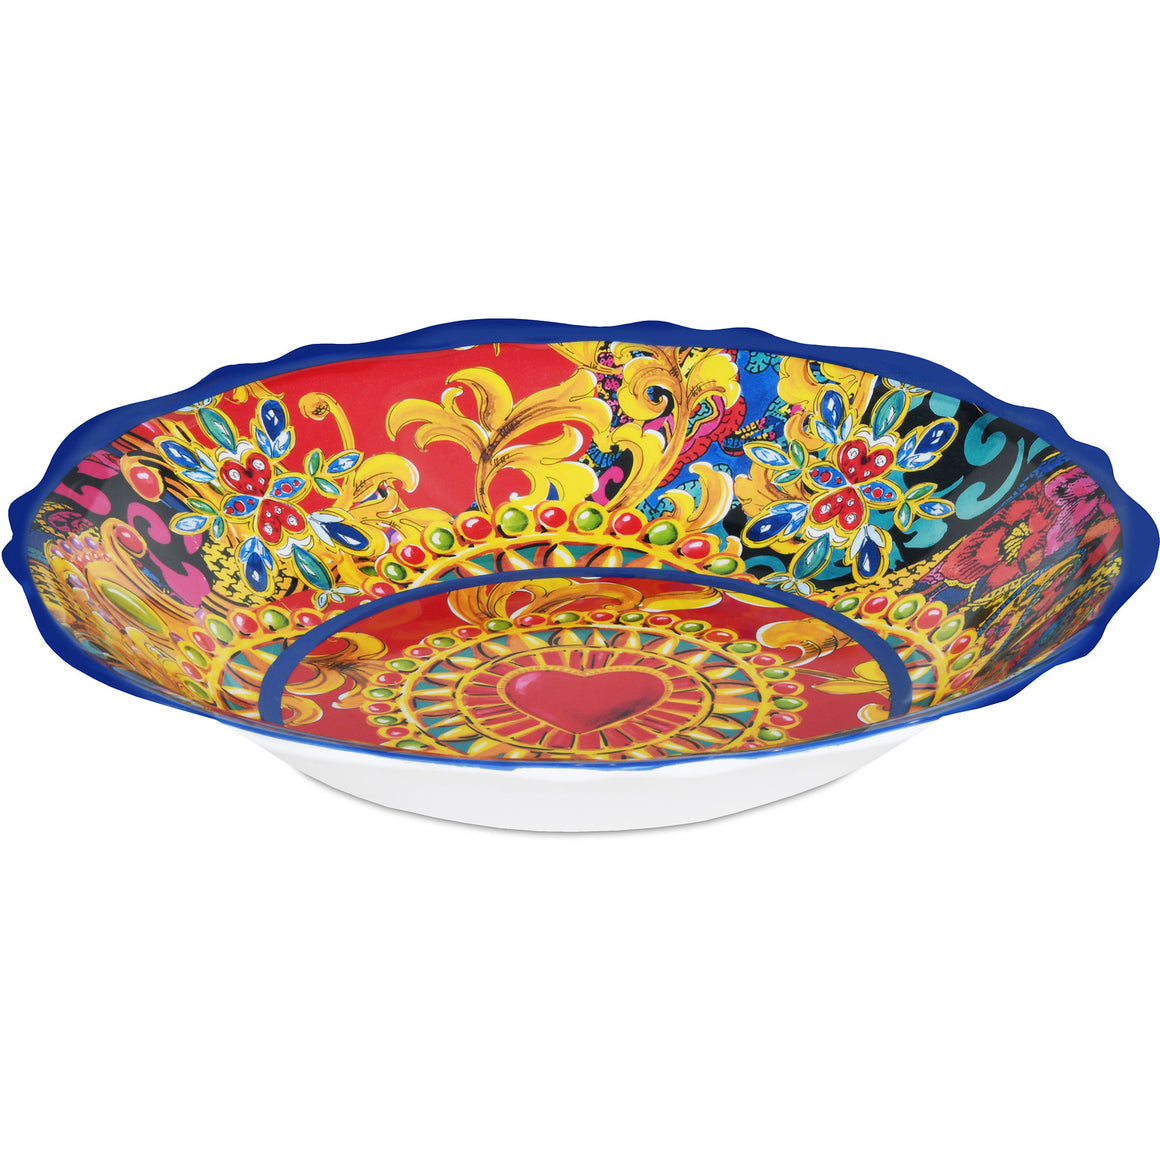 Gıo Salad Bowl 35 Cm, Red, 35 Cm